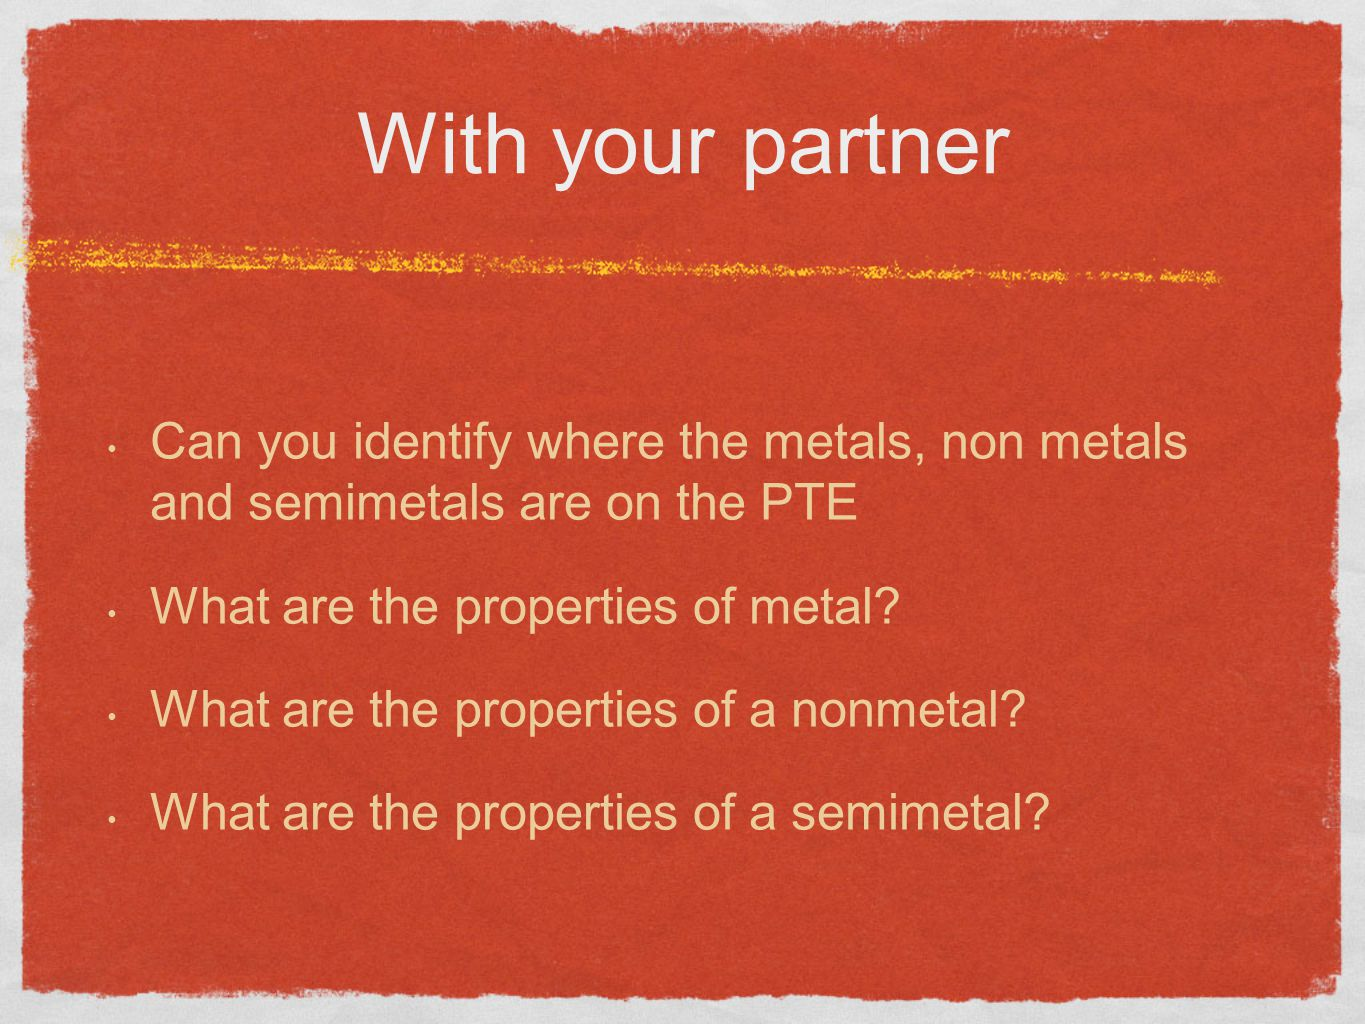 Elements and the periodic table ppt video online download with your partner can you identify where the metals non metals and semimetals are on gamestrikefo Image collections